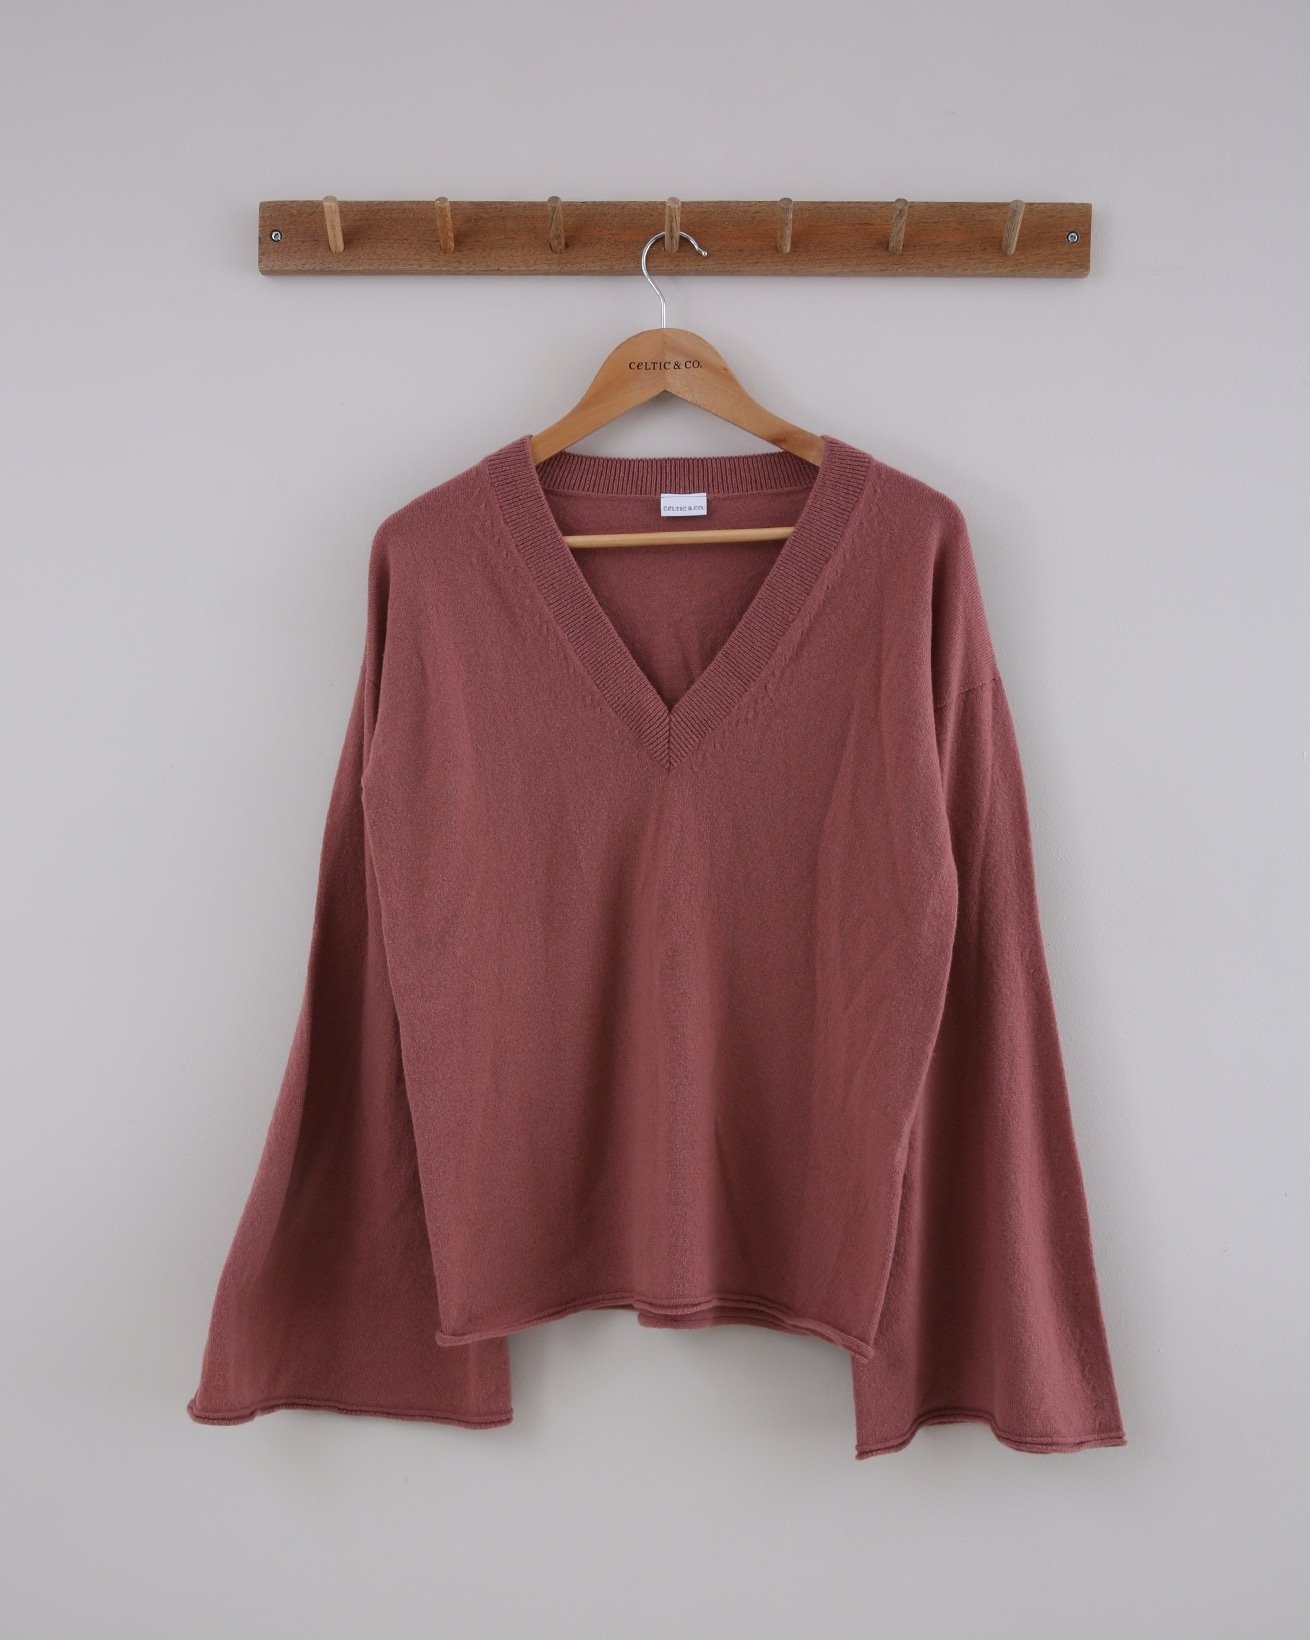 Geelong Flared Sleeve V Neck - Small - Antique Rose - 1437